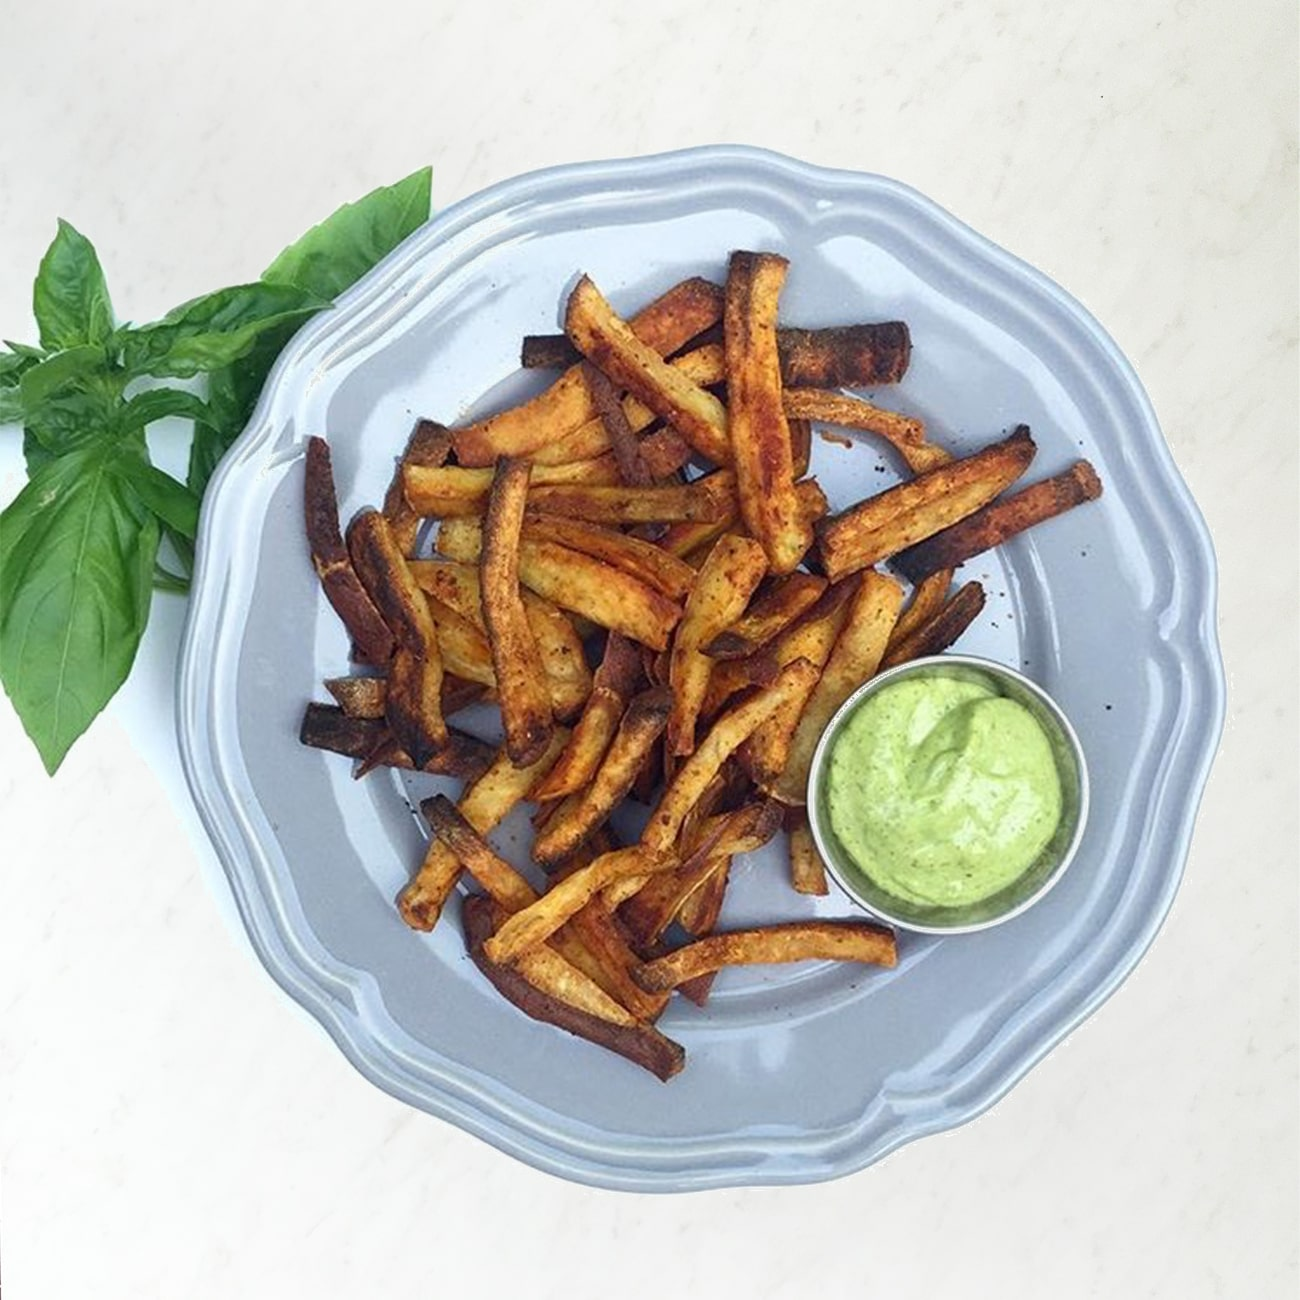 Oven Baked French Fries Recipe (Paleo + Whole30!)